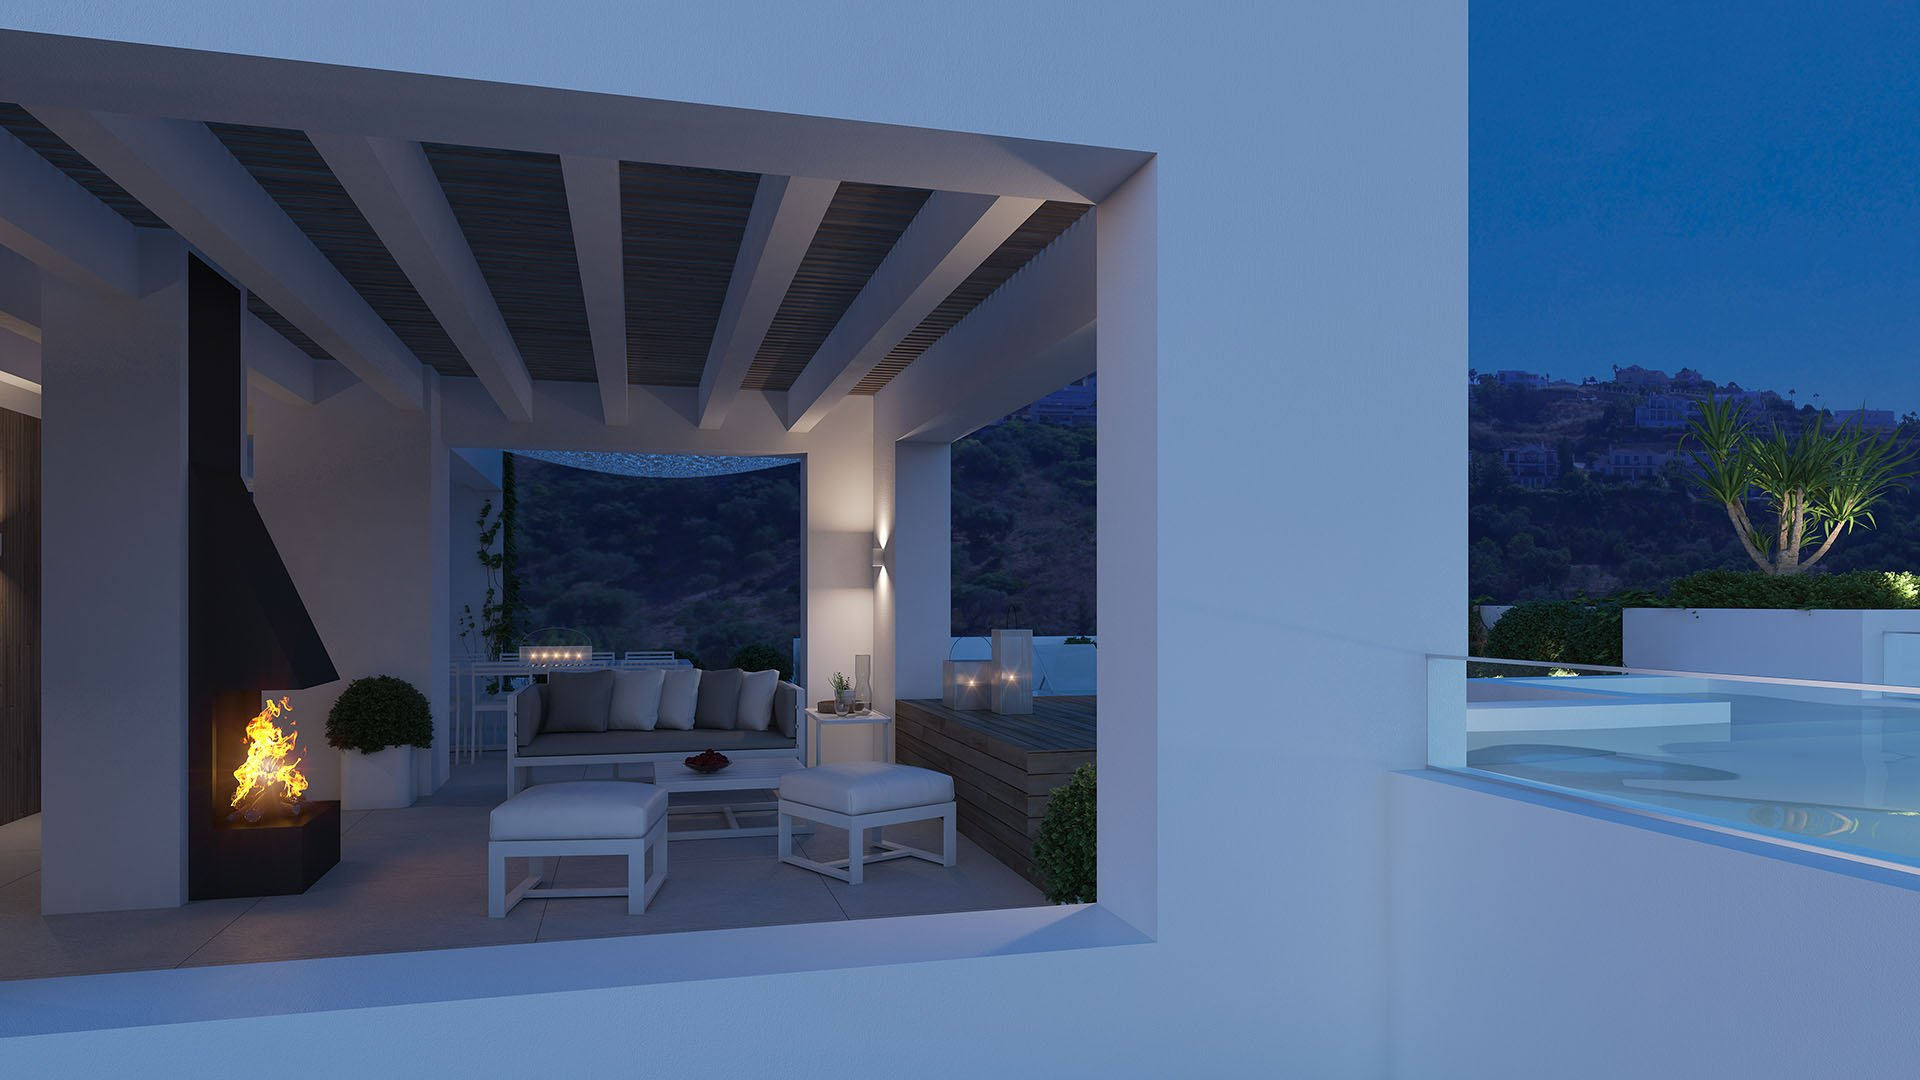 Unico Benahavís: Small boutique project with luxury apartments in Benahavís